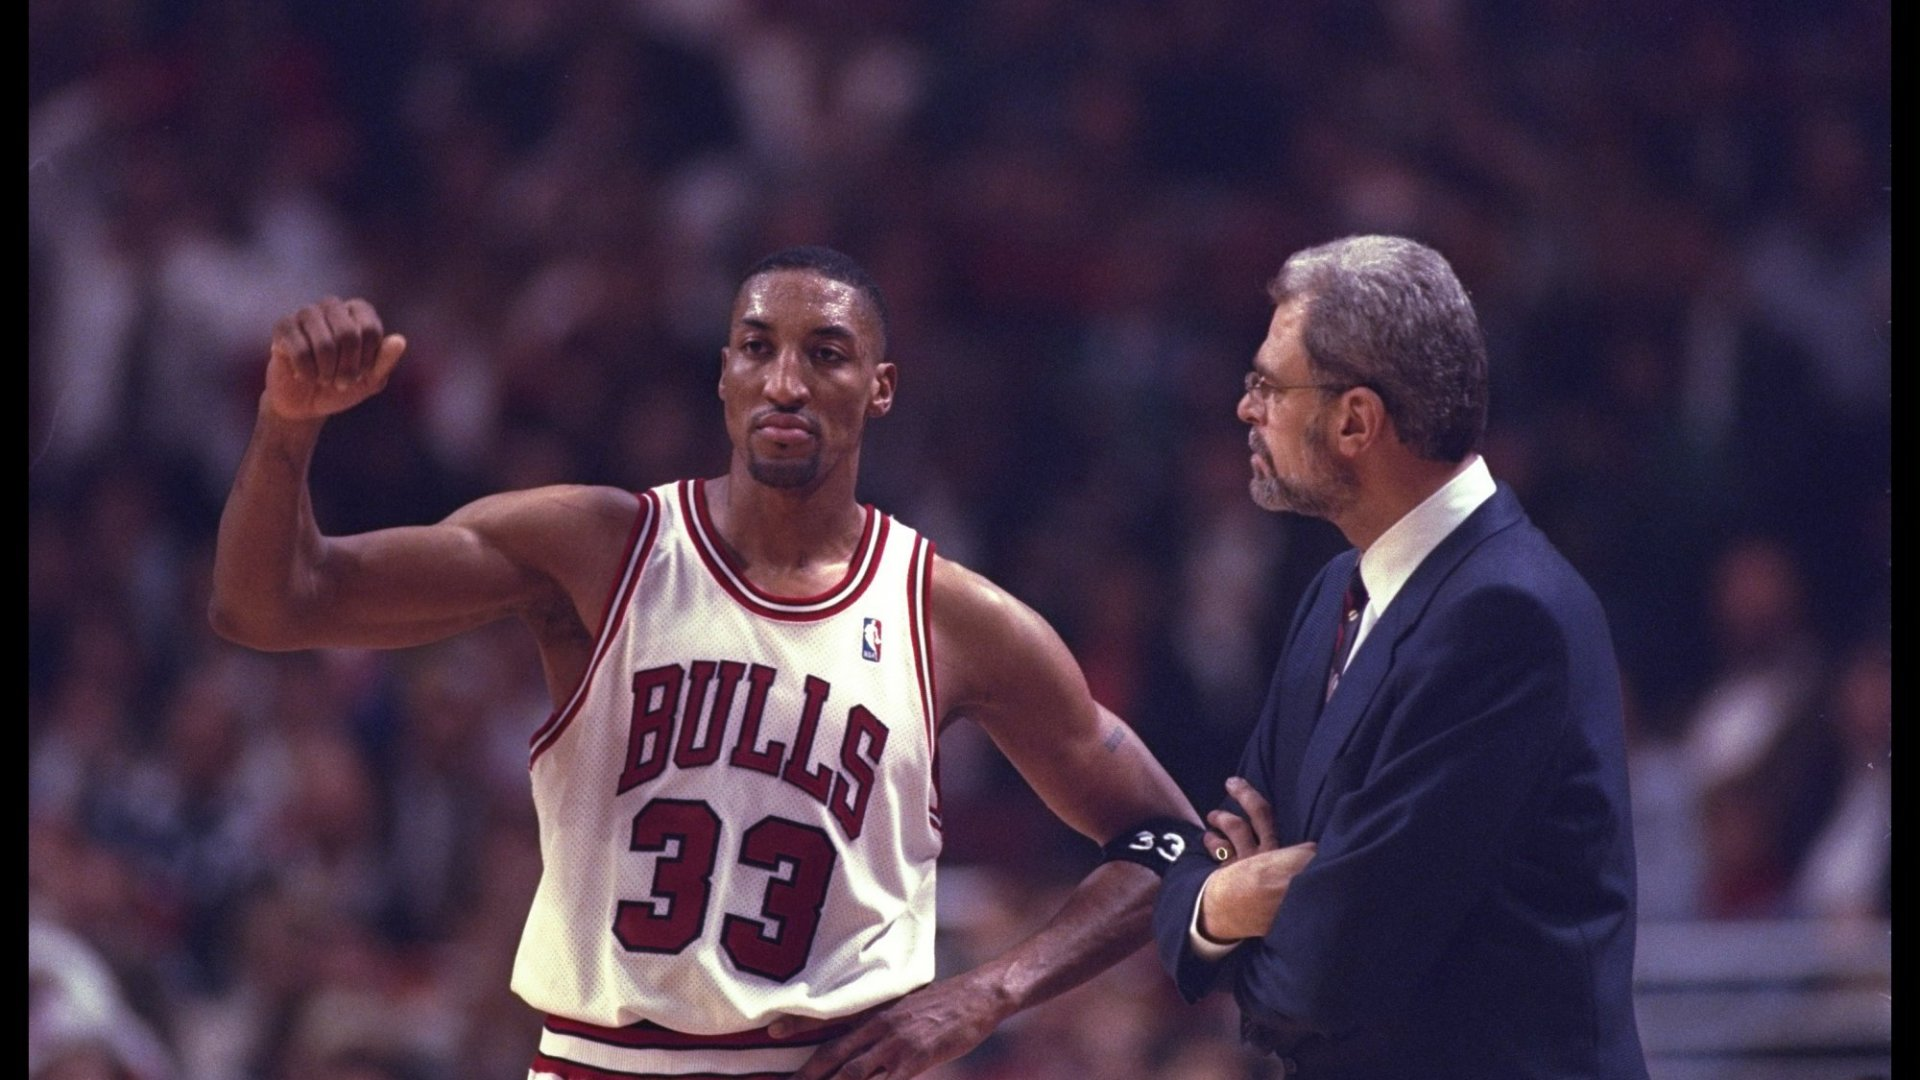 Steve Kerr and Scottie Pippen Just Revealed 3 Major Keys to Leading a Great Team